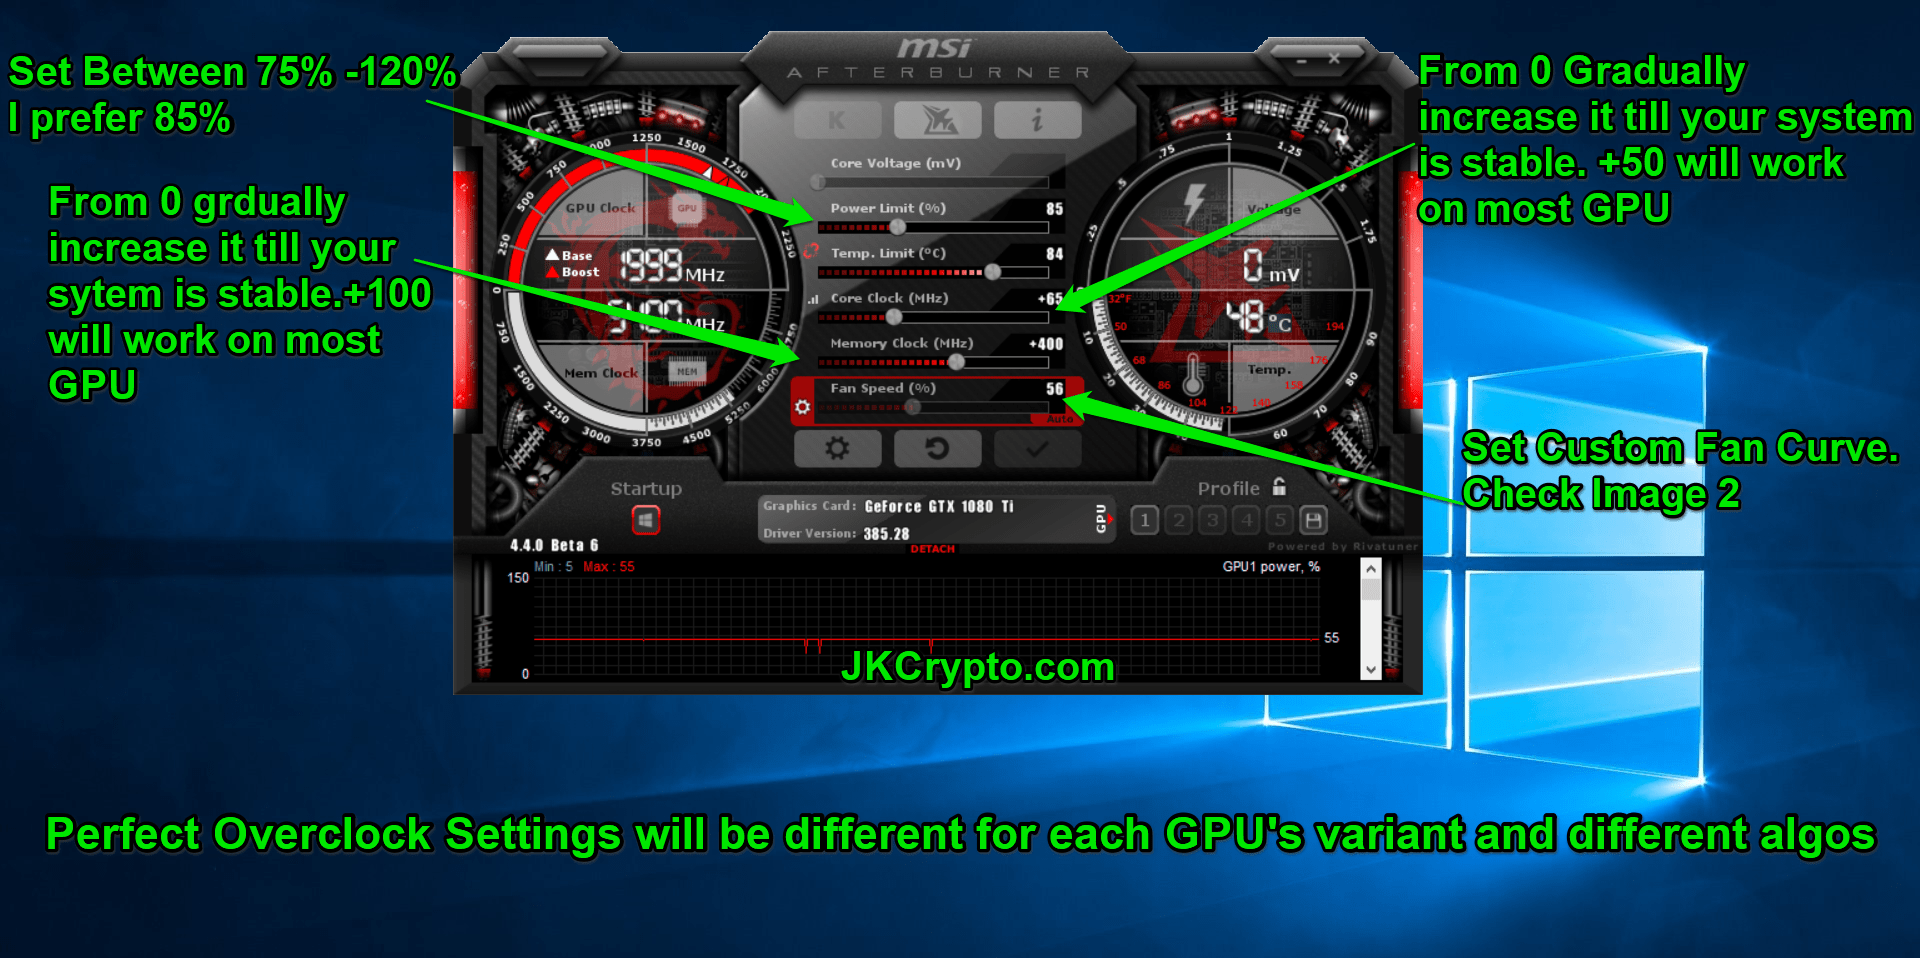 msi afterburner overclock settings